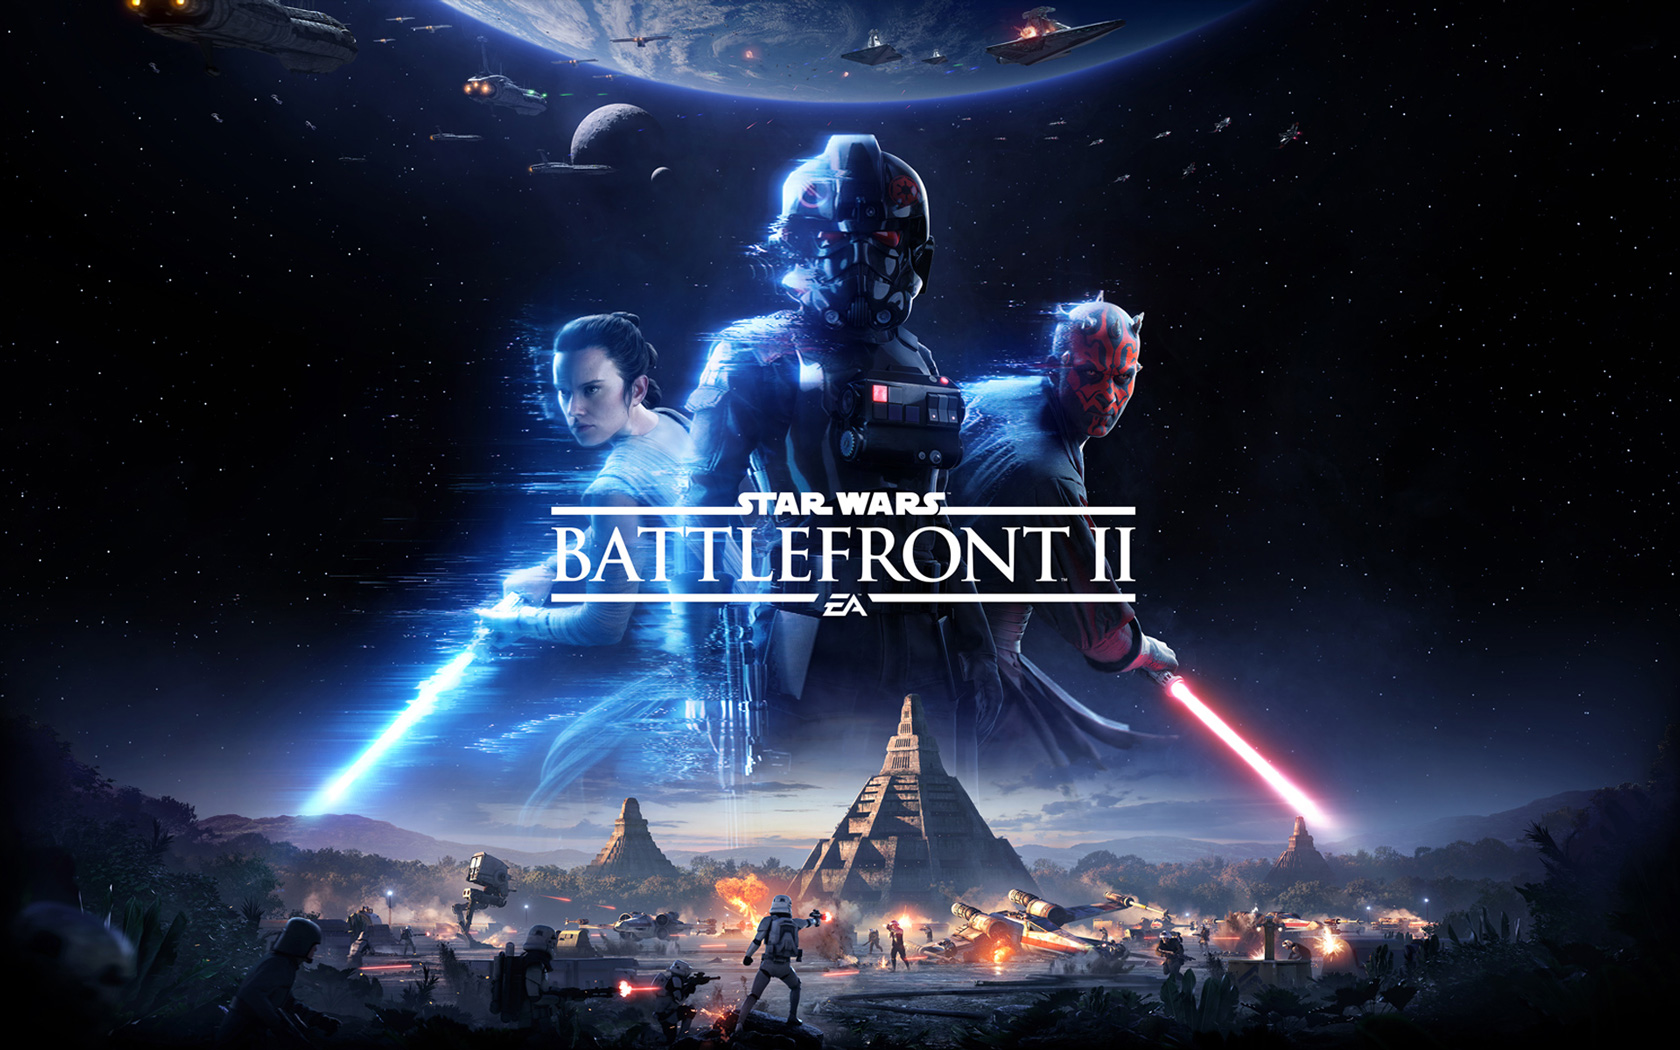 Star Wars: Battlefront II Wallpaper in 1680x1050